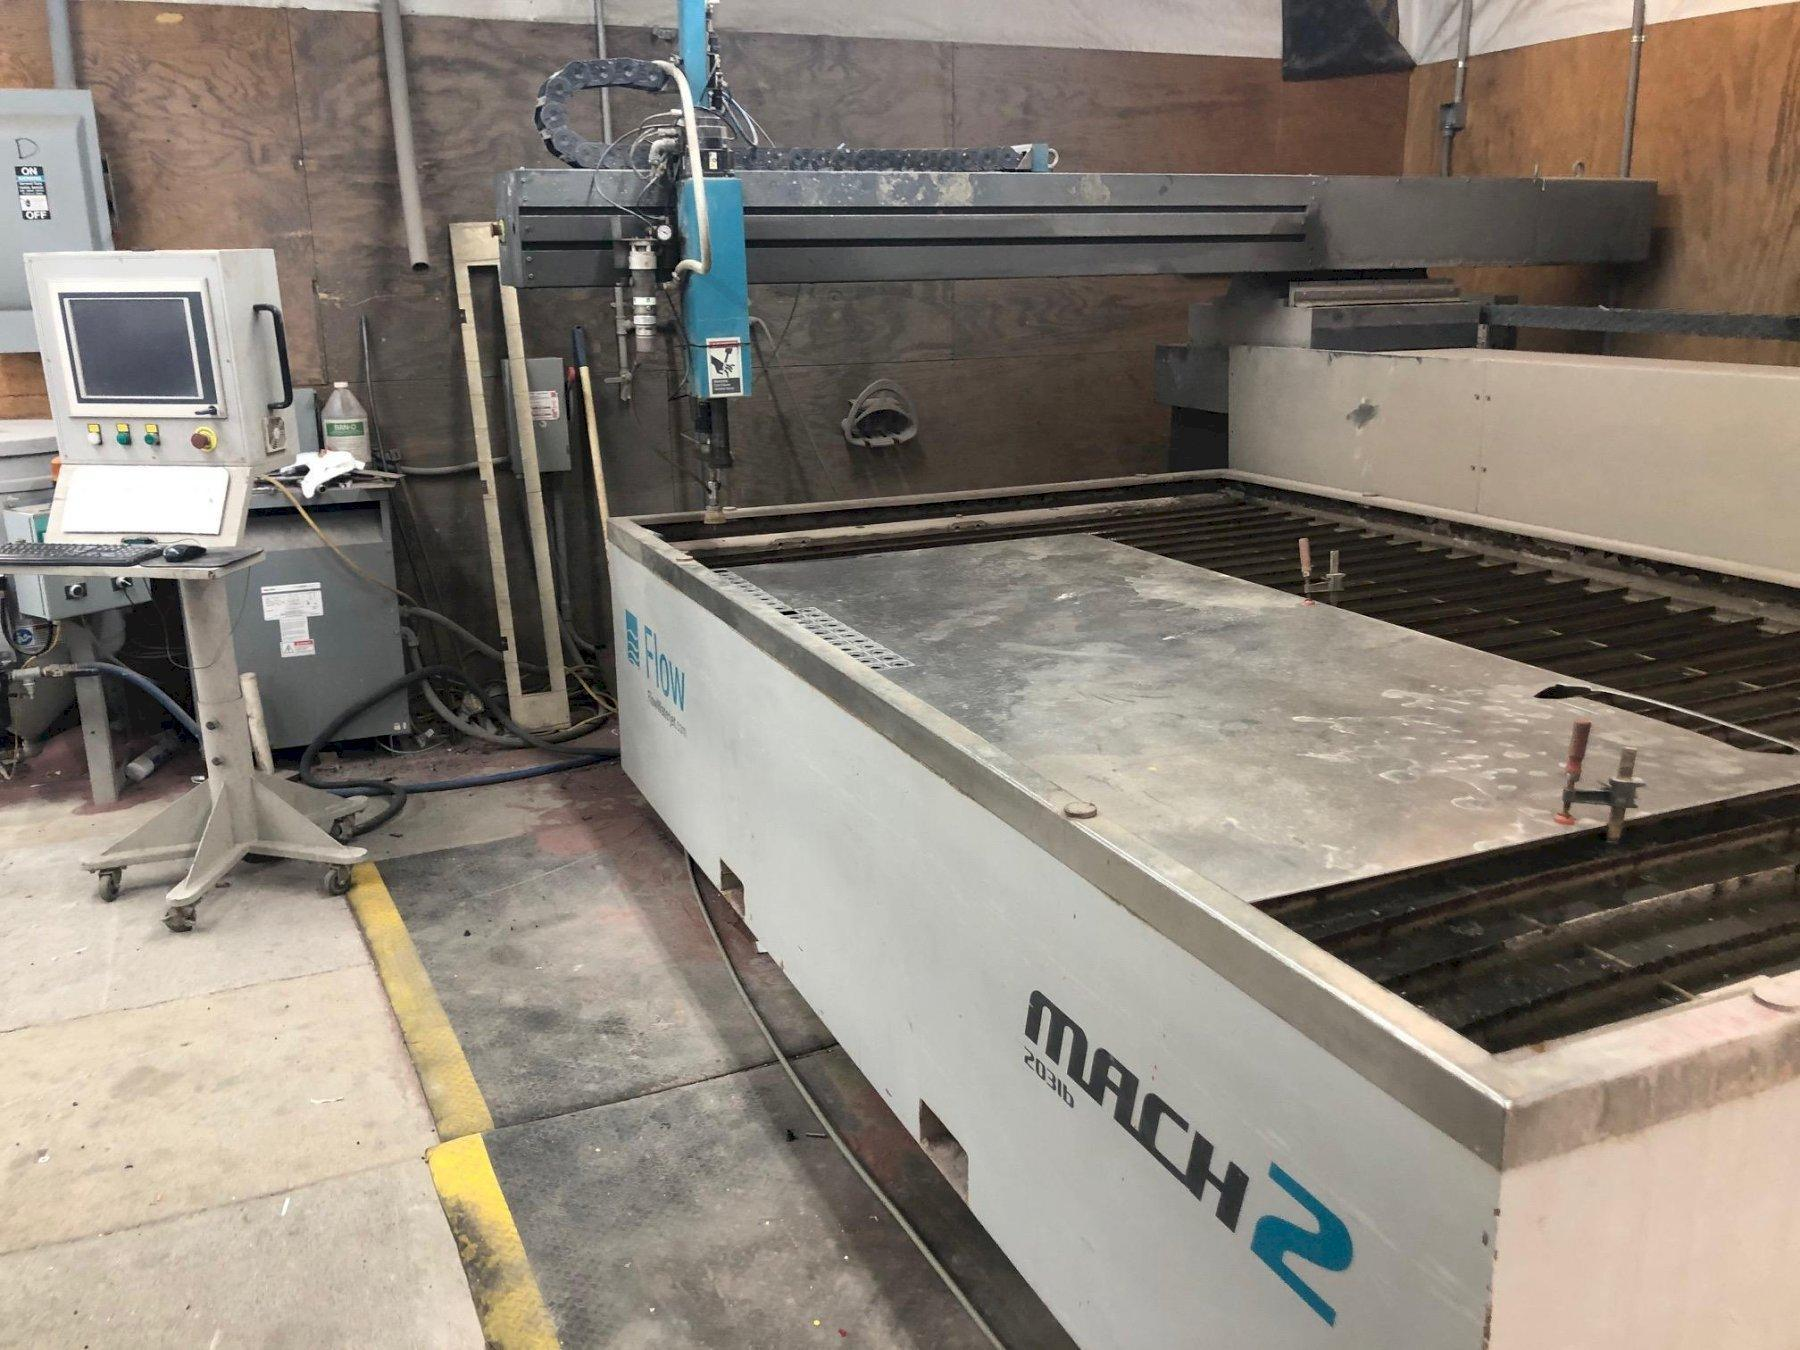 Flow Mach 2b 6'x10' CNC Waterjet Cutting System - New 2013